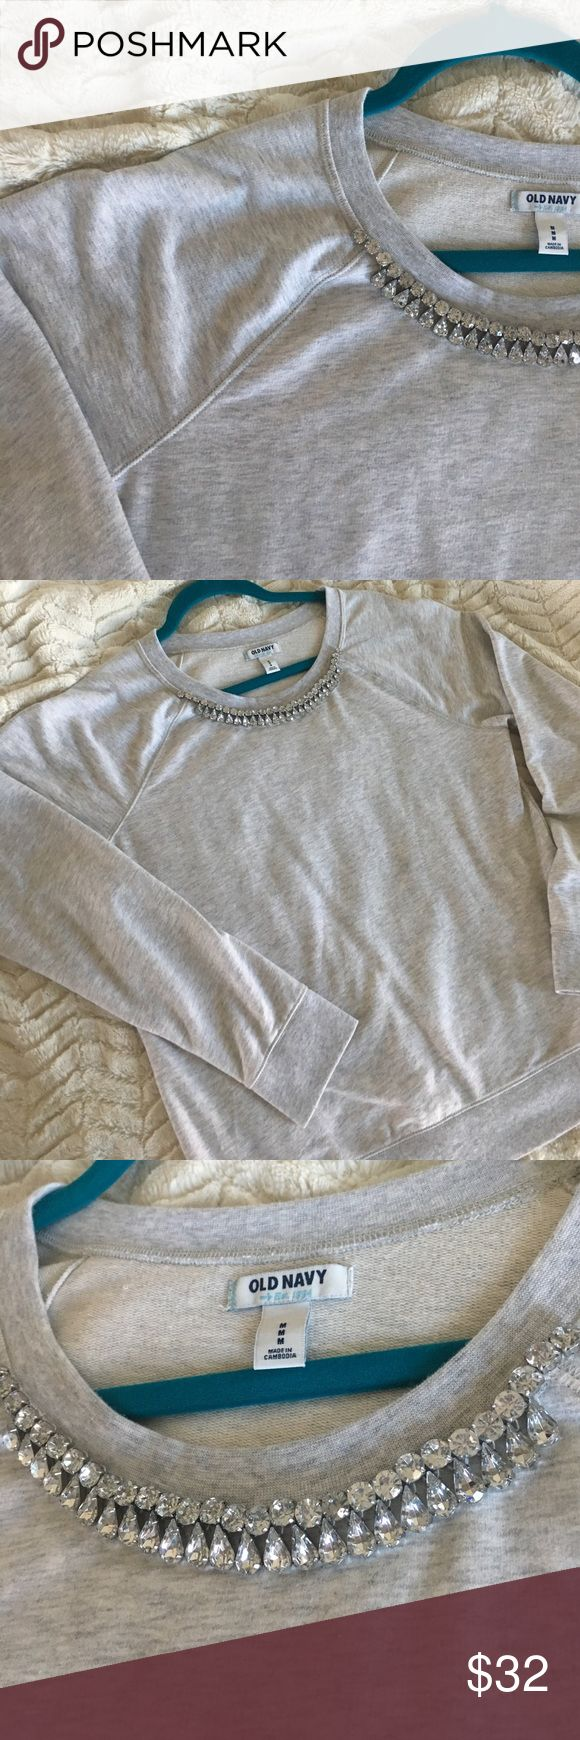 Old Navy Rhinestone Sweatshirt Stunning rhinestones on this lightweight grey Old Navy sweatshirt. Immaculate condition. Like new. Worn once at most. All rhinestones are in place and gorgeous!!! Accepting reasonable offers🌈 Old Navy Tops Sweatshirts & Hoodies